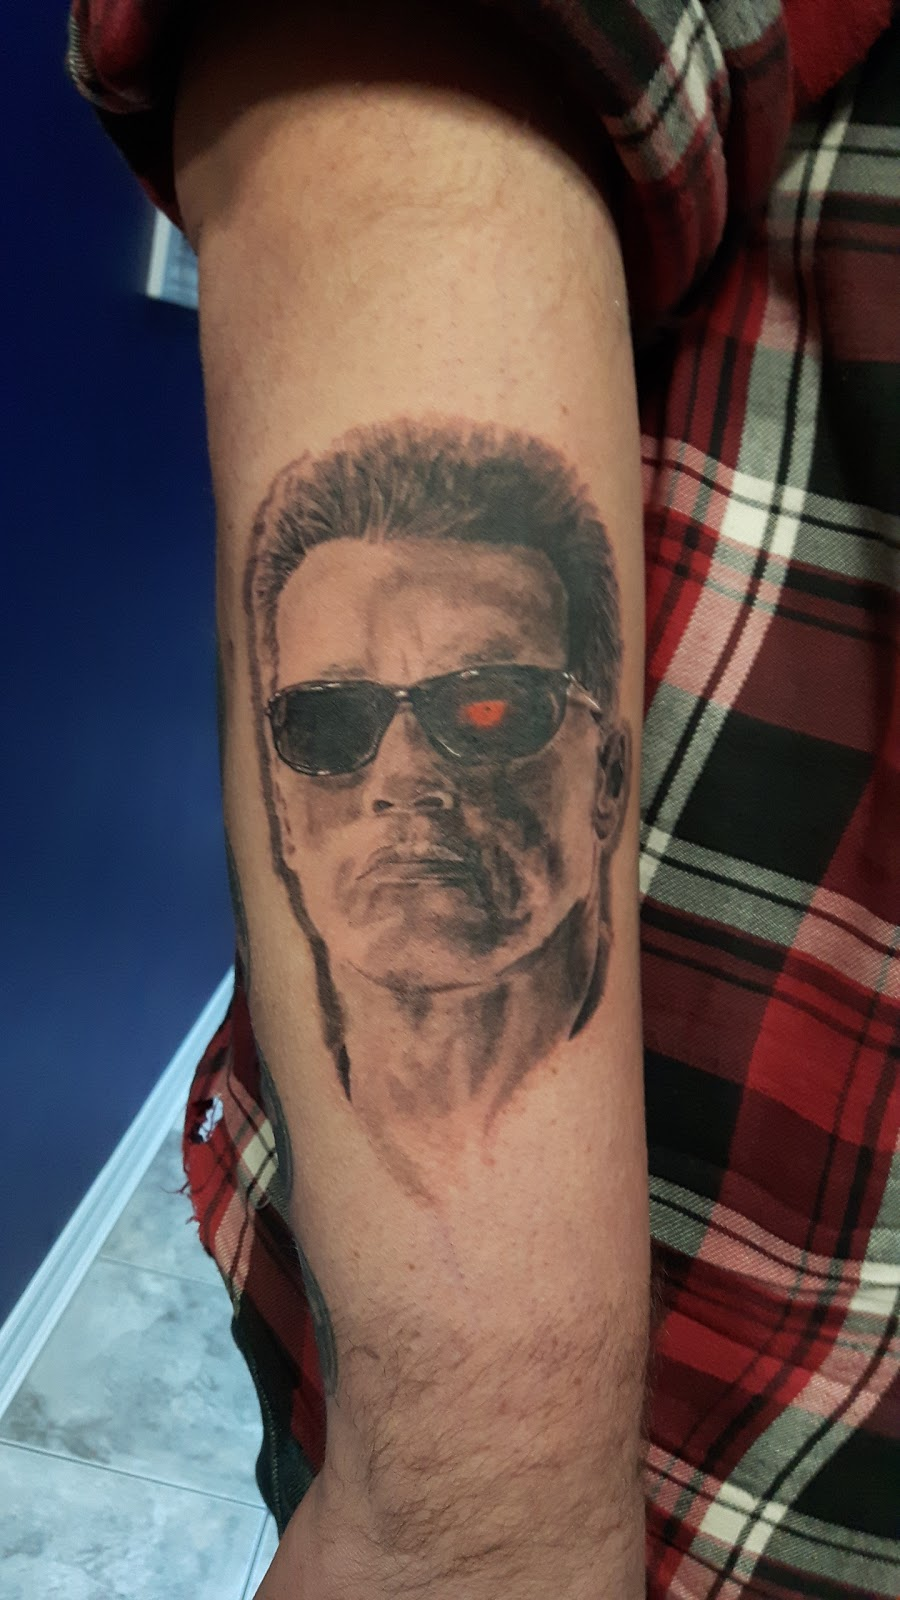 Kryptonian Ink | store | 428 Concession St, Hamilton, ON L9A 1B9, Canada | 9055226993 OR +1 905-522-6993